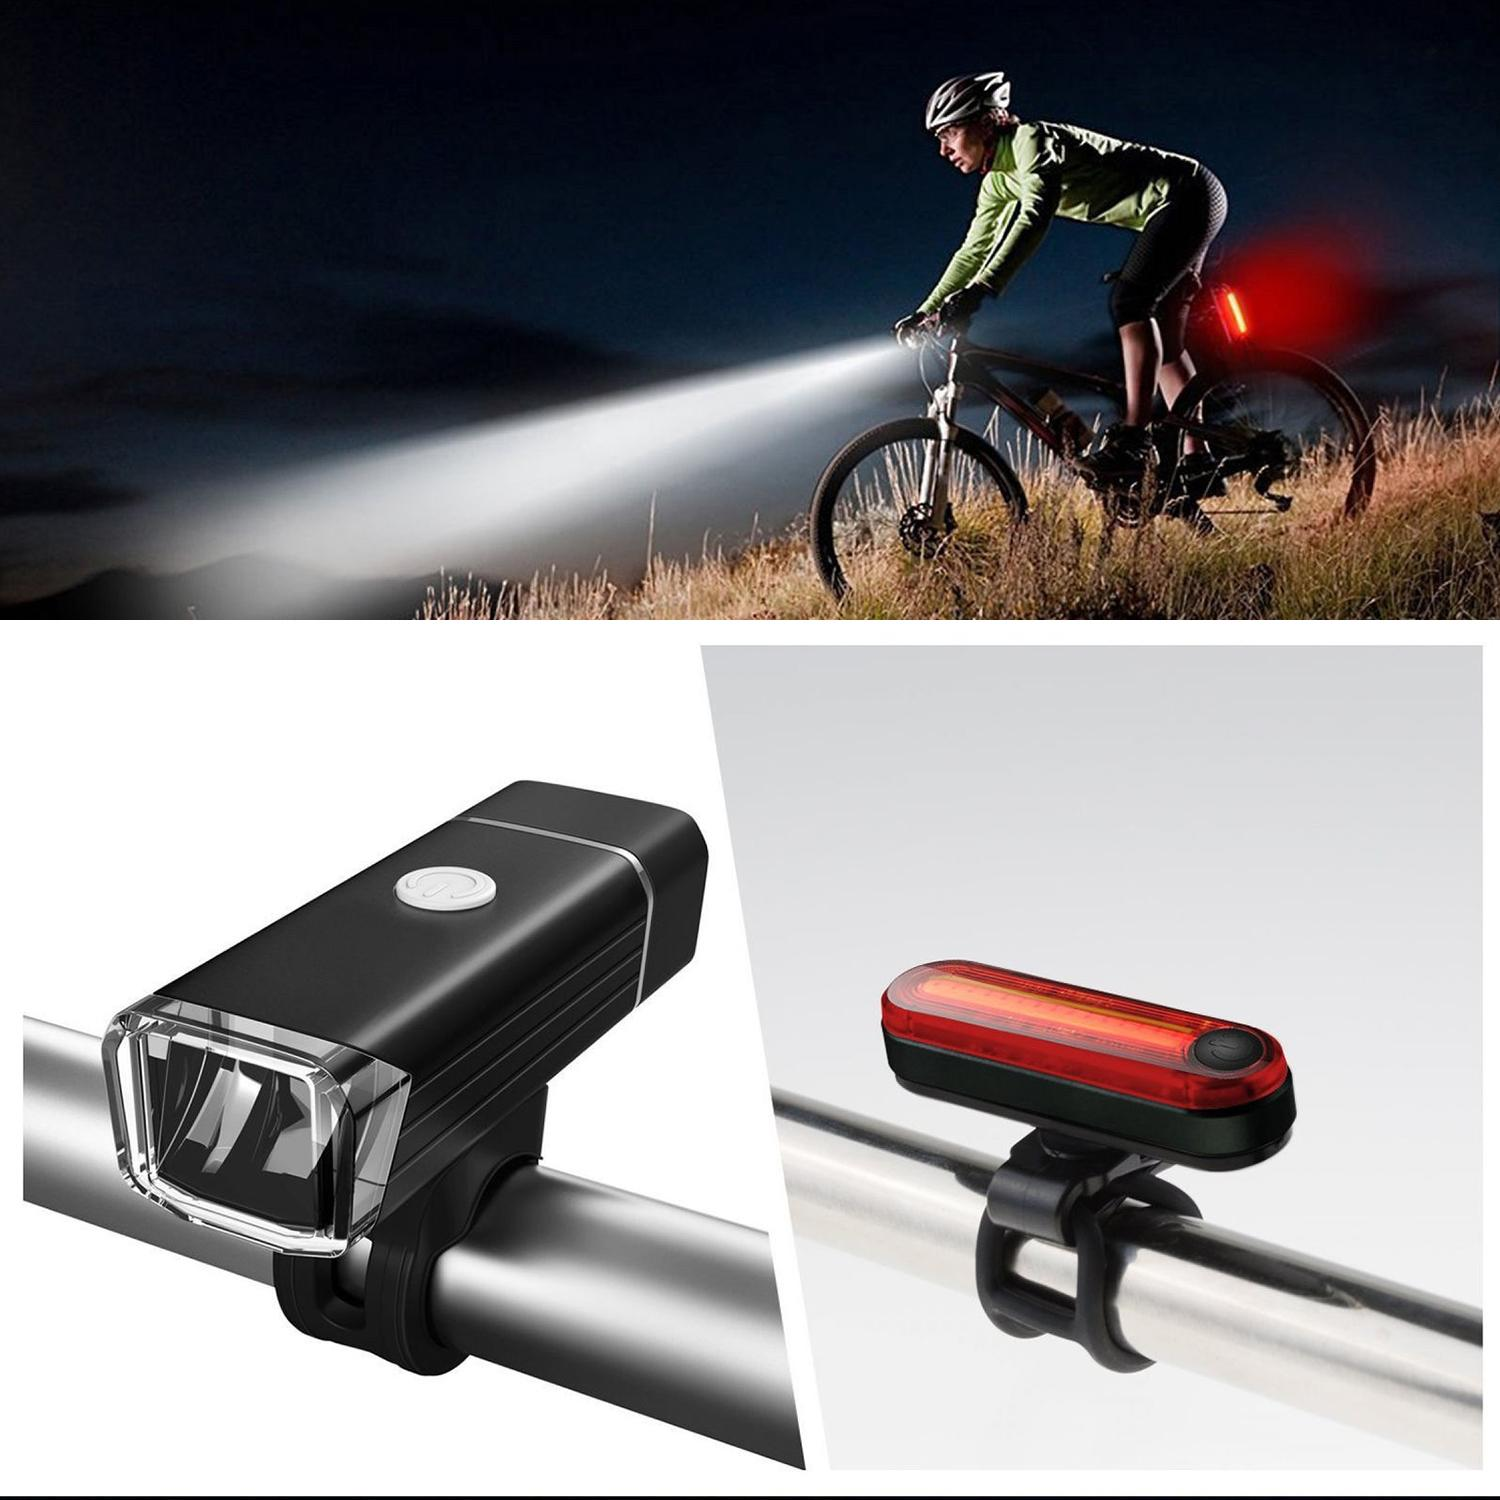 [SG Seller]SAVFY Bike Lights Sets,USB LED Rechargeable Bicycle Lights Set  Mountain Cycle Front Back Headlight